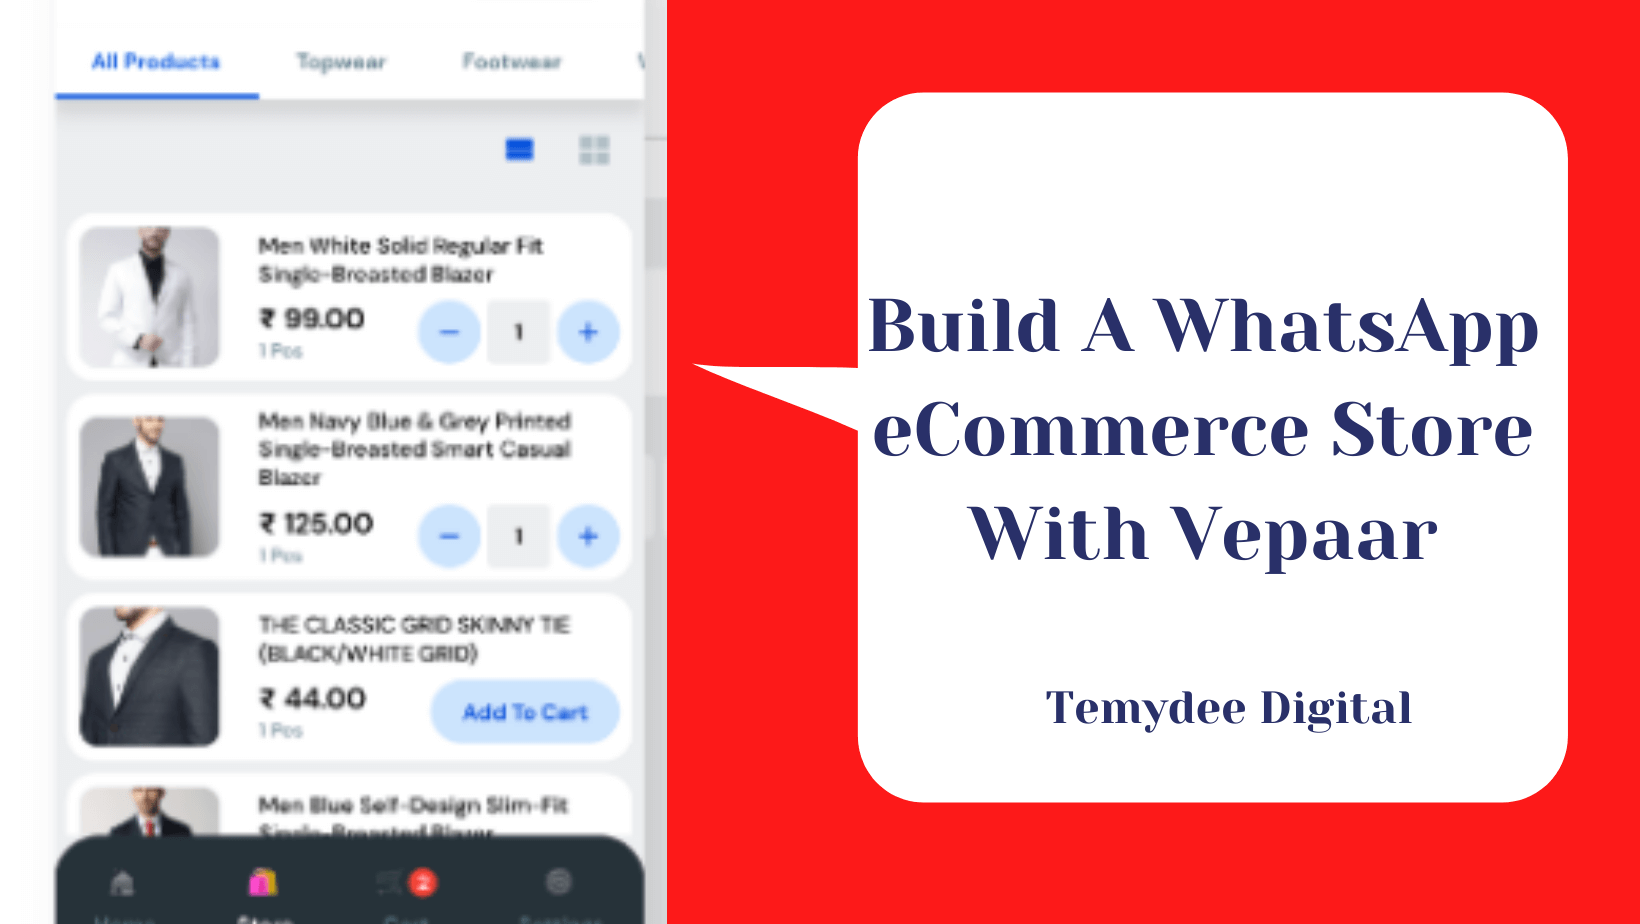 How To Build a WhatsApp Store or eCommerce With Vepaar (formerly WhatsHash)